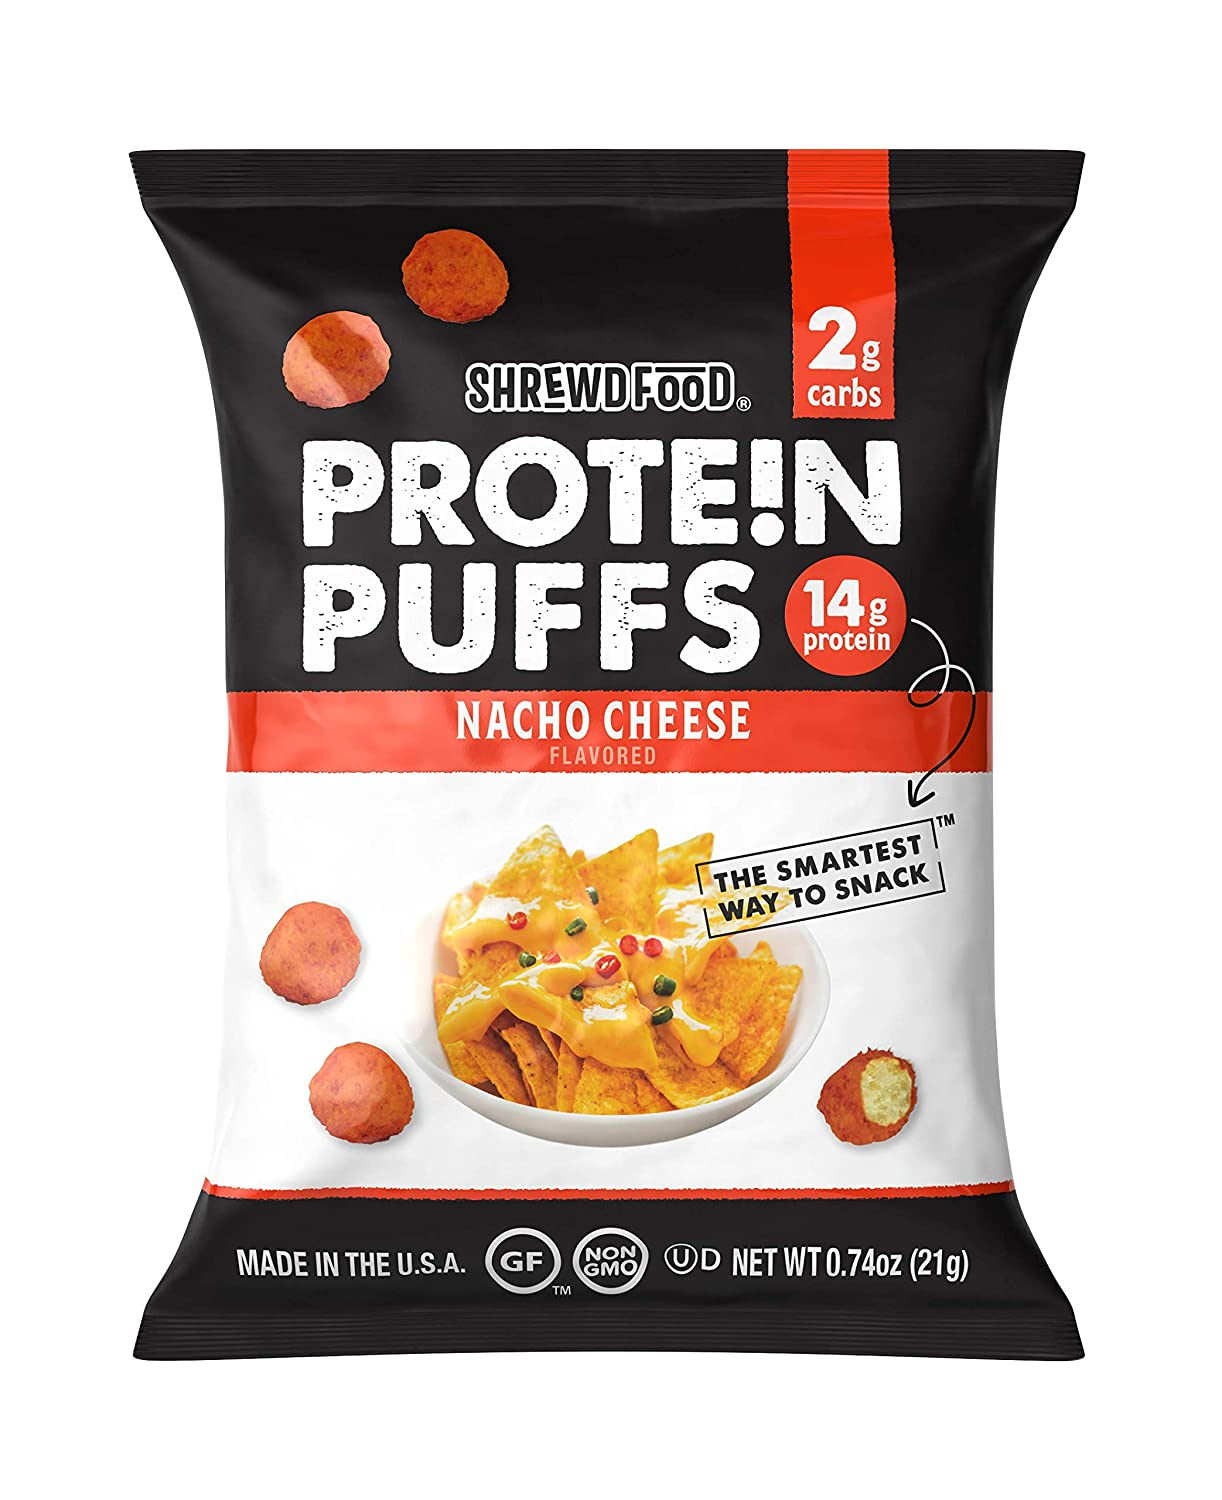 Shrewd Food Protein Puffs, Low Carb Snack, Keto Friendly Crunch, High Protein Crisp, Gluten Free, Soy Free, Peanut Free, 14g Protein - 2g Carbs Per Serving, Nacho Cheese, 8 Pack